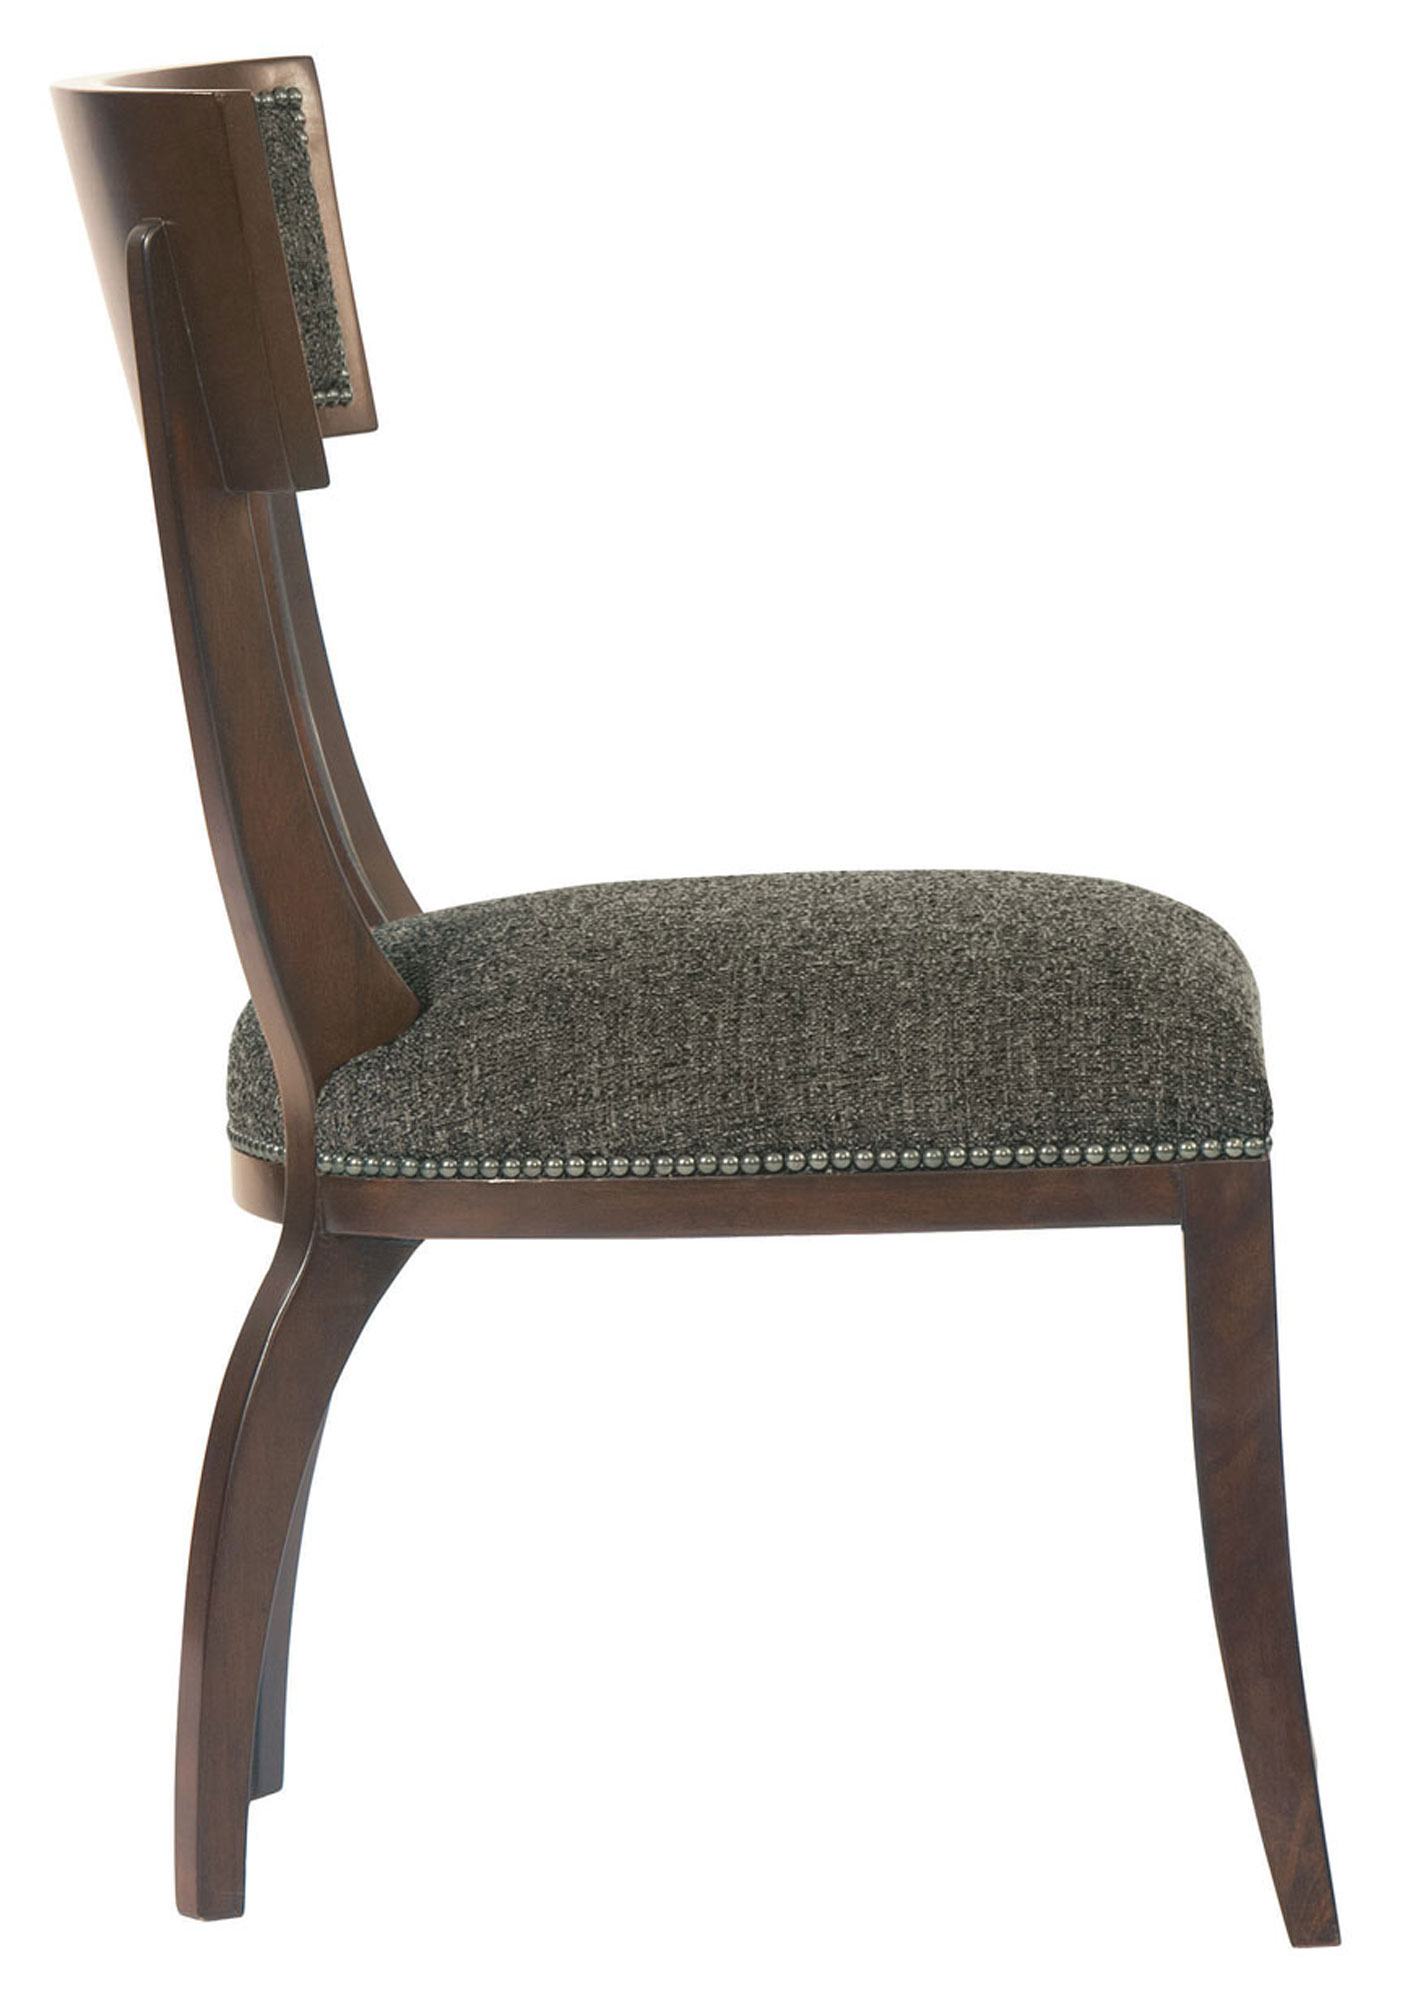 Canadian Furniture Websites Chair Bernhardt